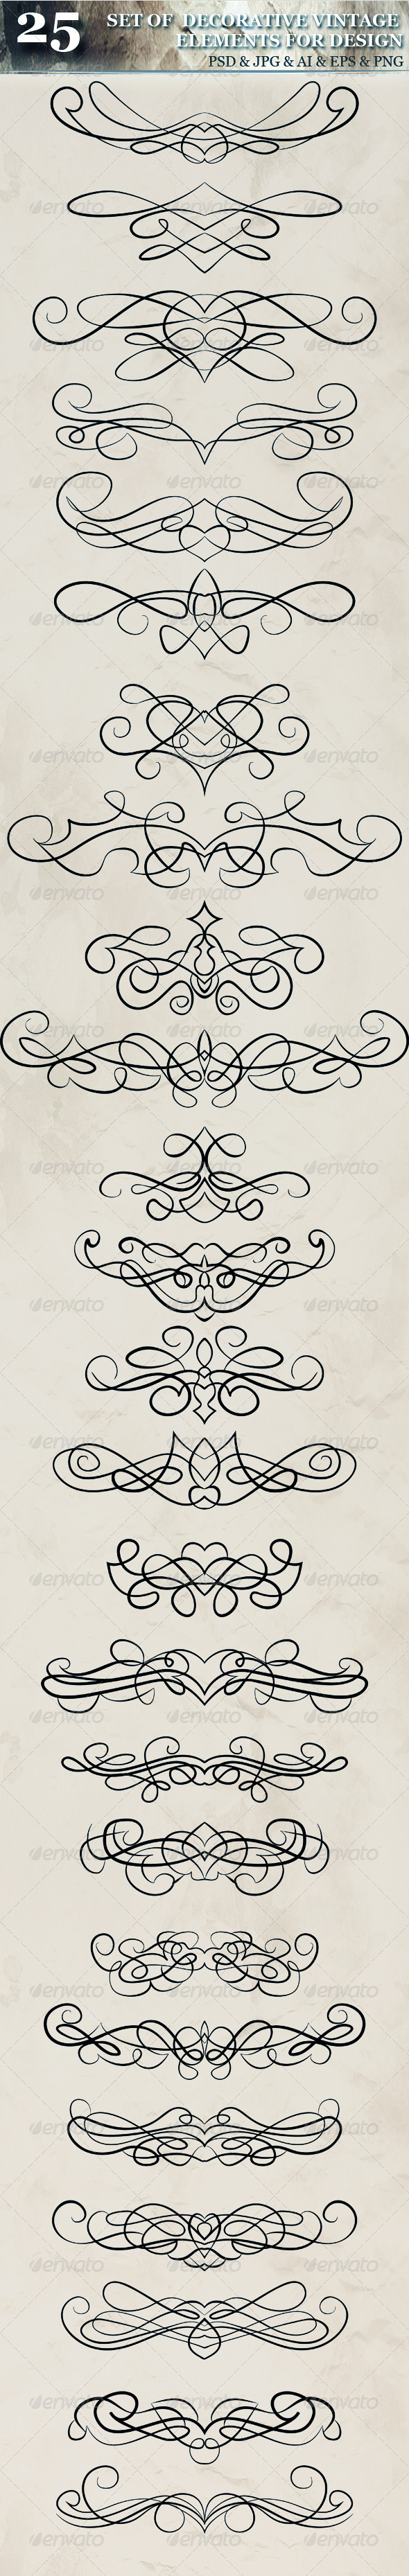 GraphicRiver Set Of Decorative Calligraphic Vintage Elements 5549603